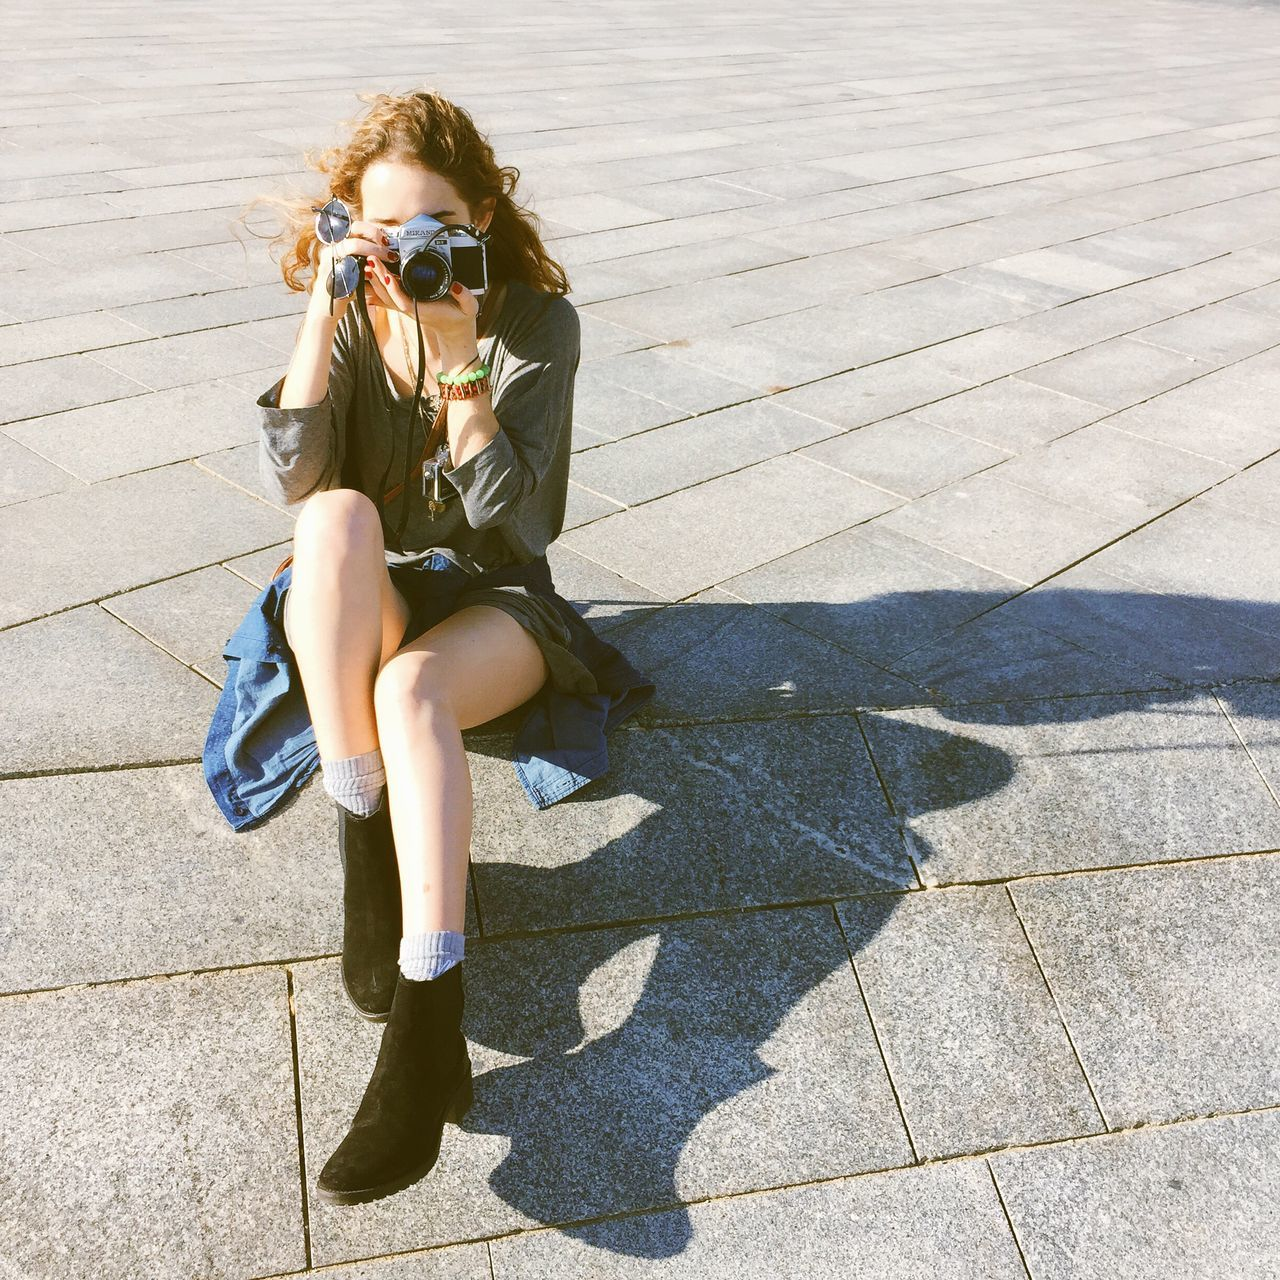 Shooting Photography Camera Taking Photos Girl Portrait Autumn Sunny Day The Traveler - 2015 EyeEm Awards The Fashionist - 2015 EyeEm Awards Visual Trends SS16 - Lifestyle x Travel The City Light